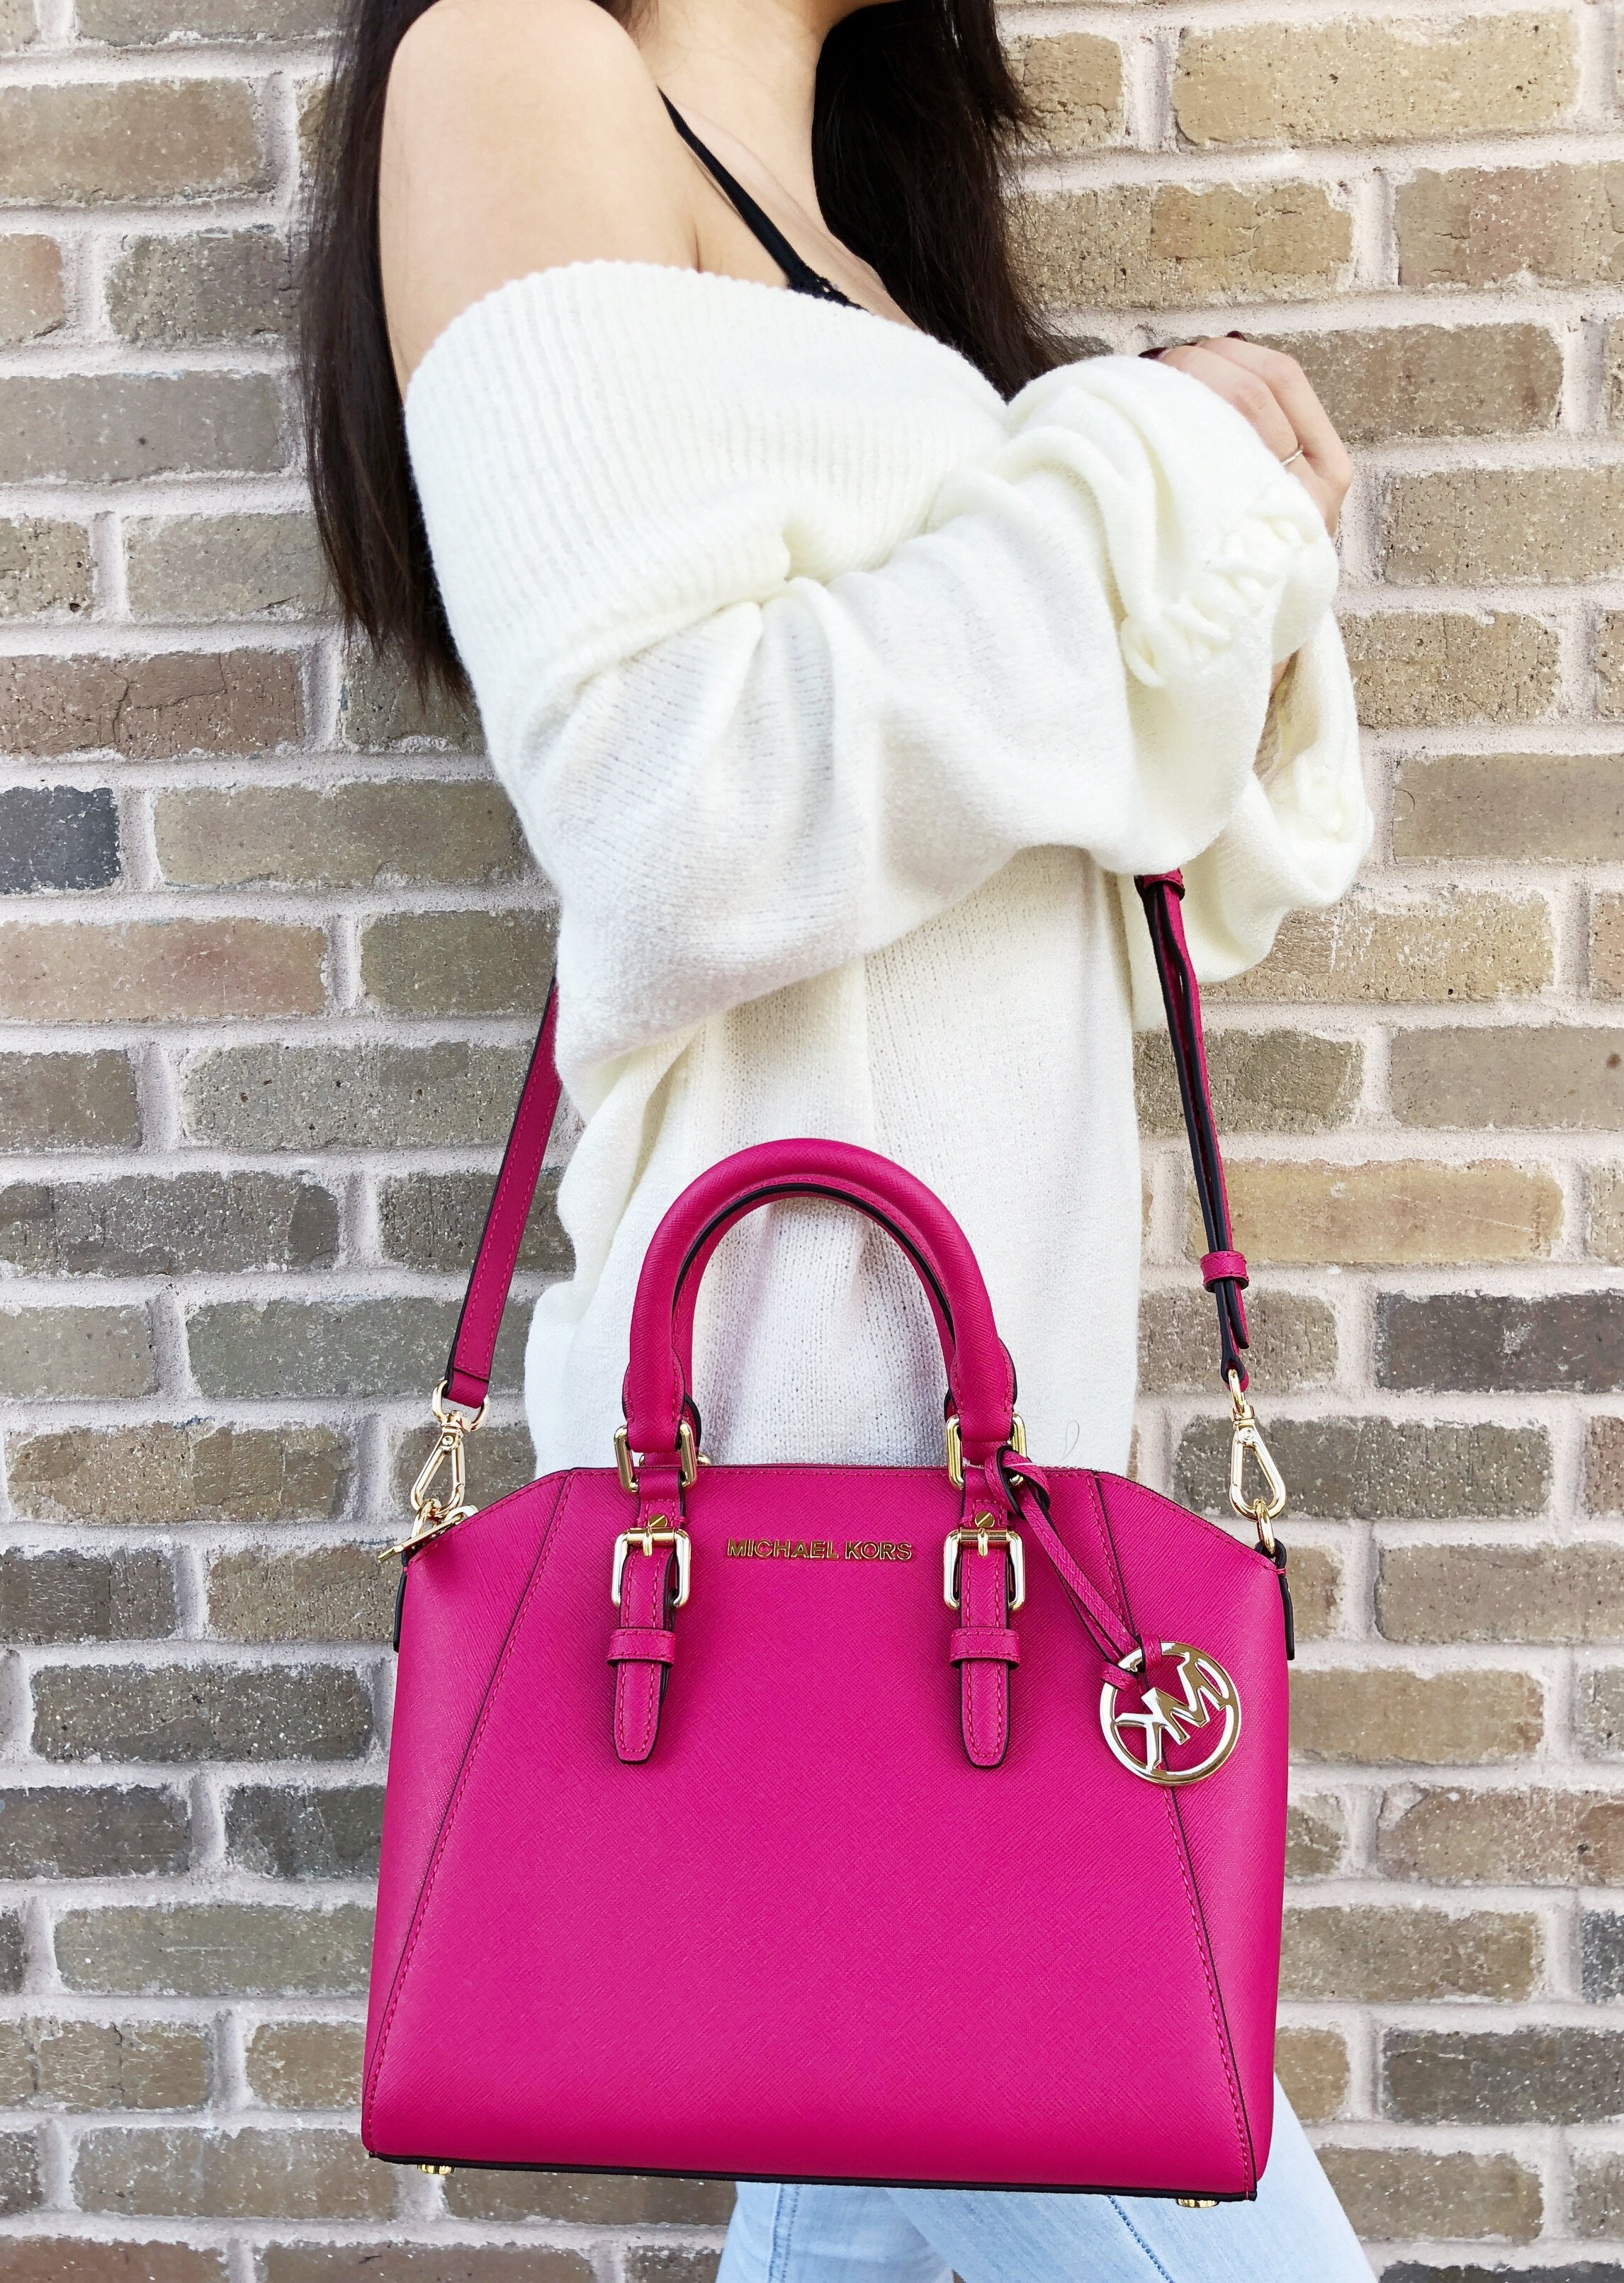 Find great deals on eBay for michael kors handbags. Shop with confidence.